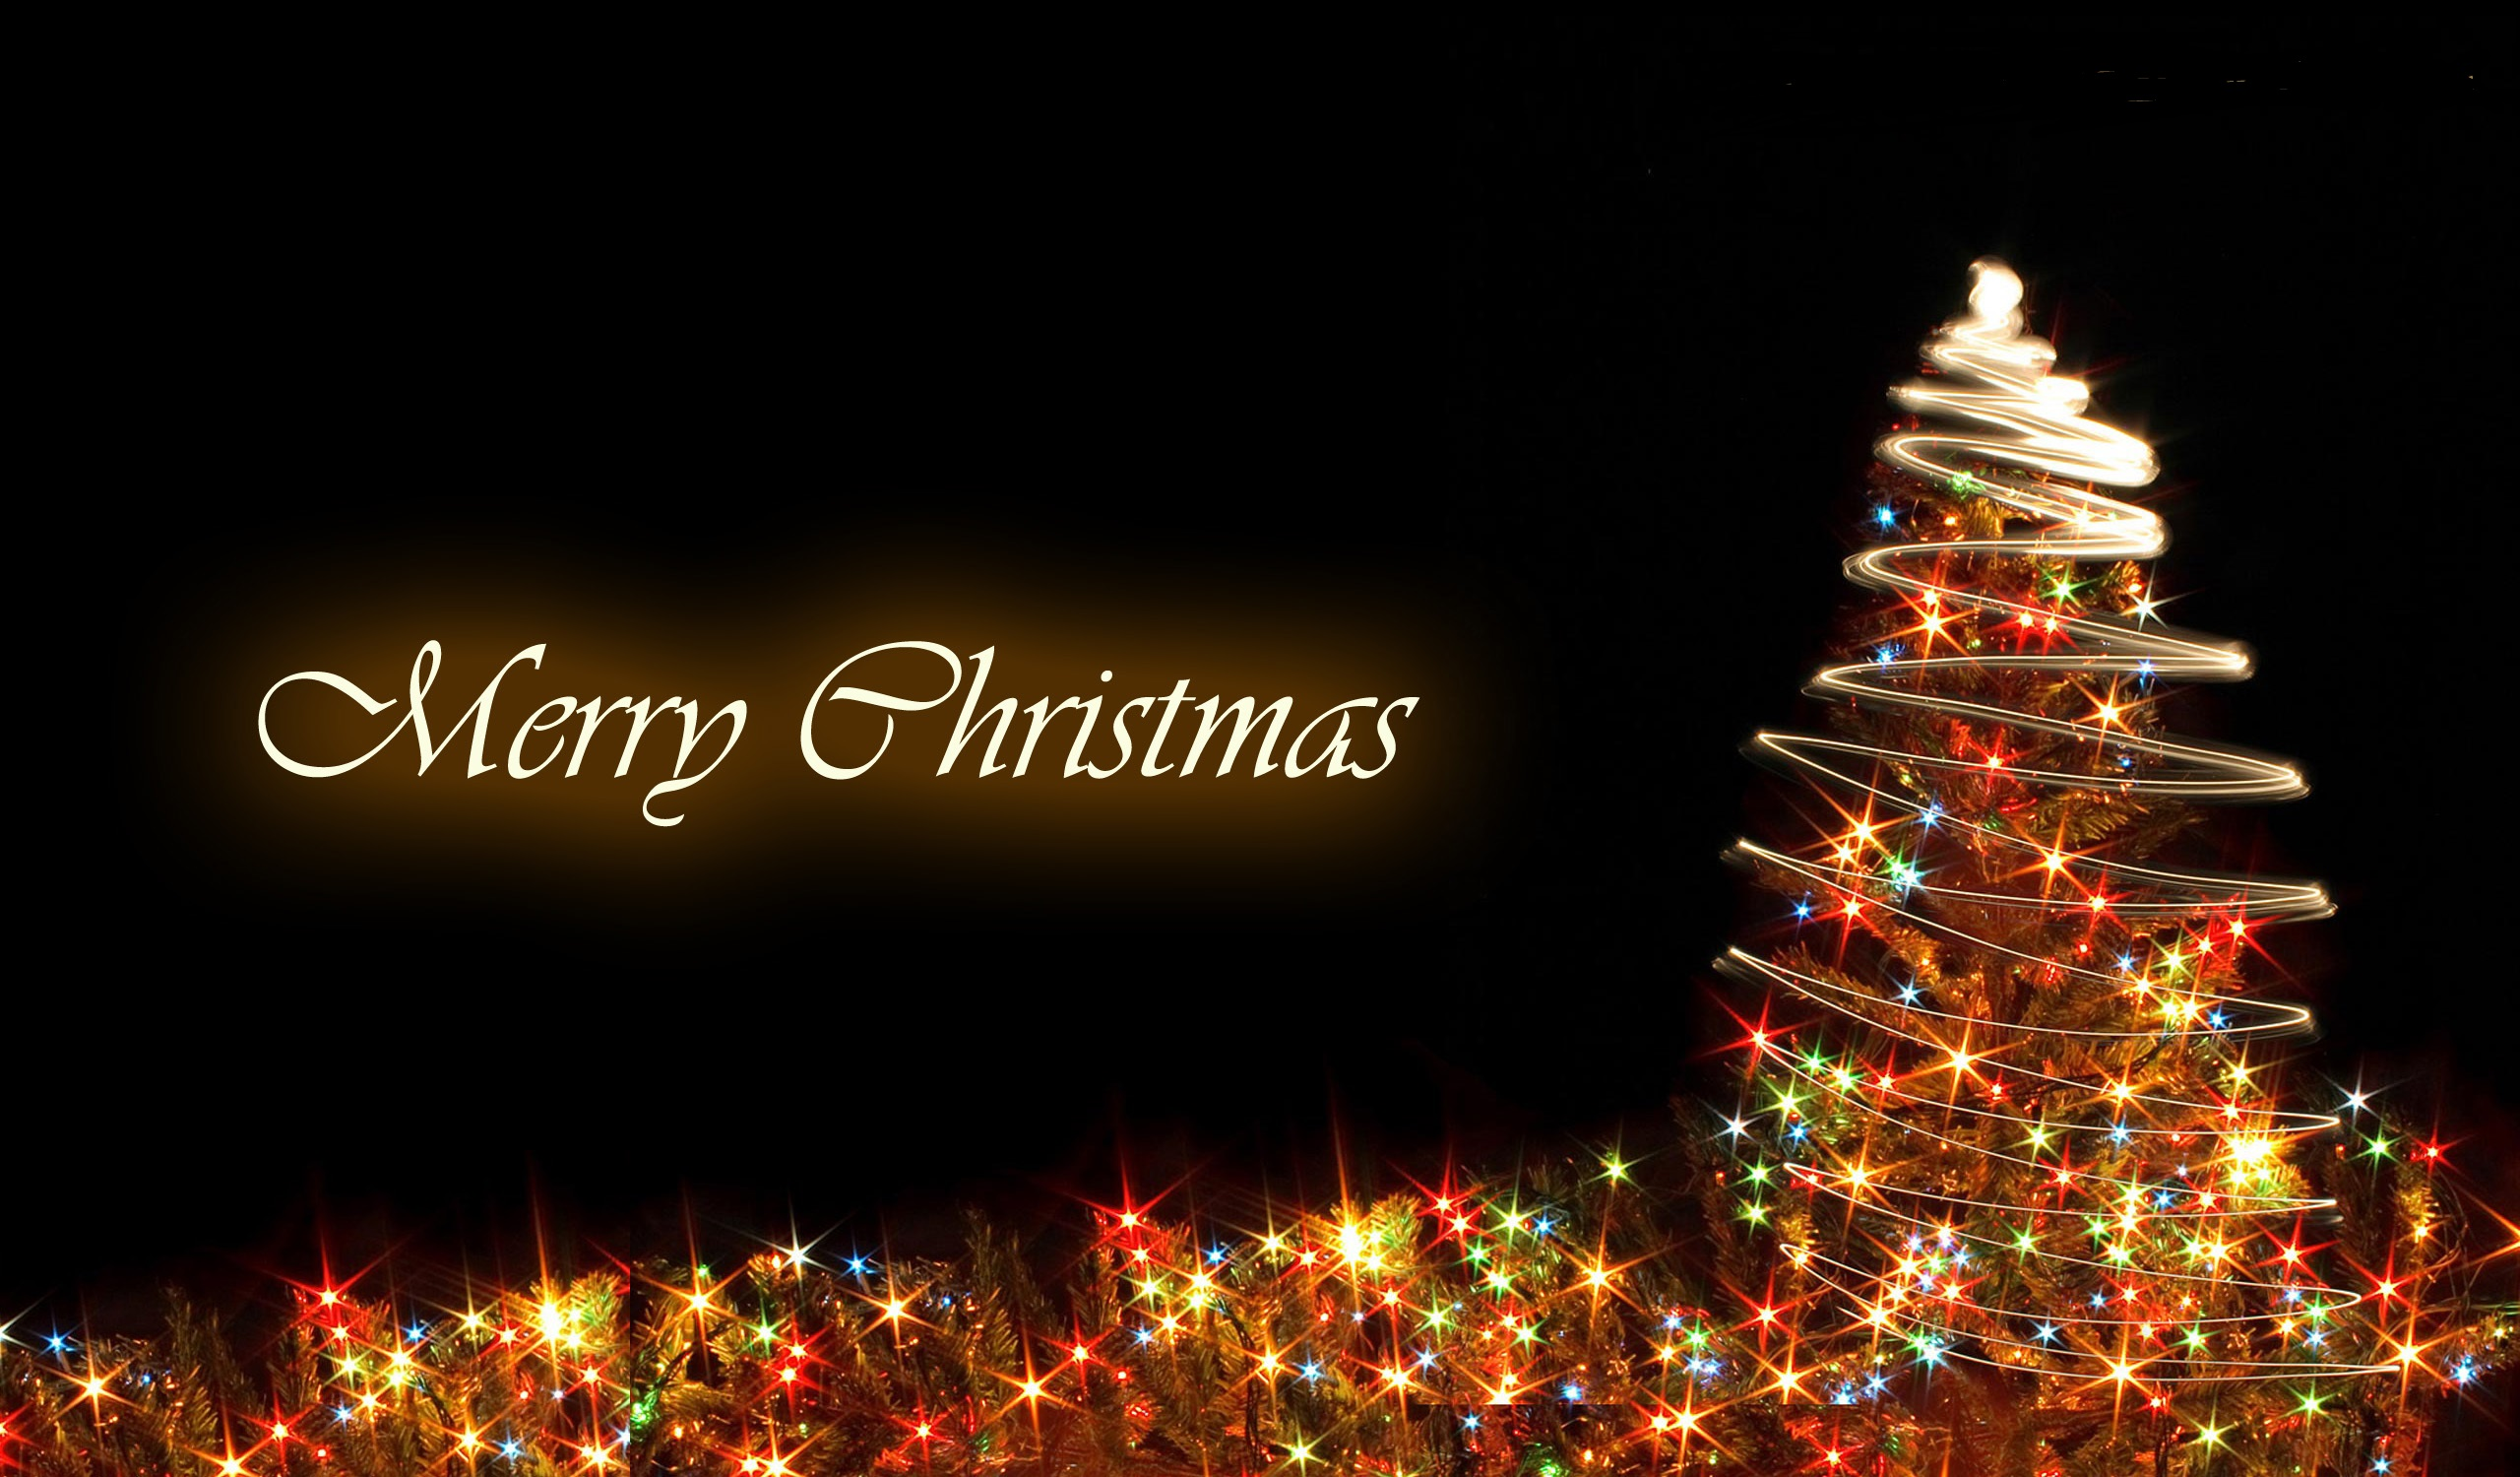 Christmas-Wallpaper-free-hd-wallpapers-for-desktop - HD Wallpaper